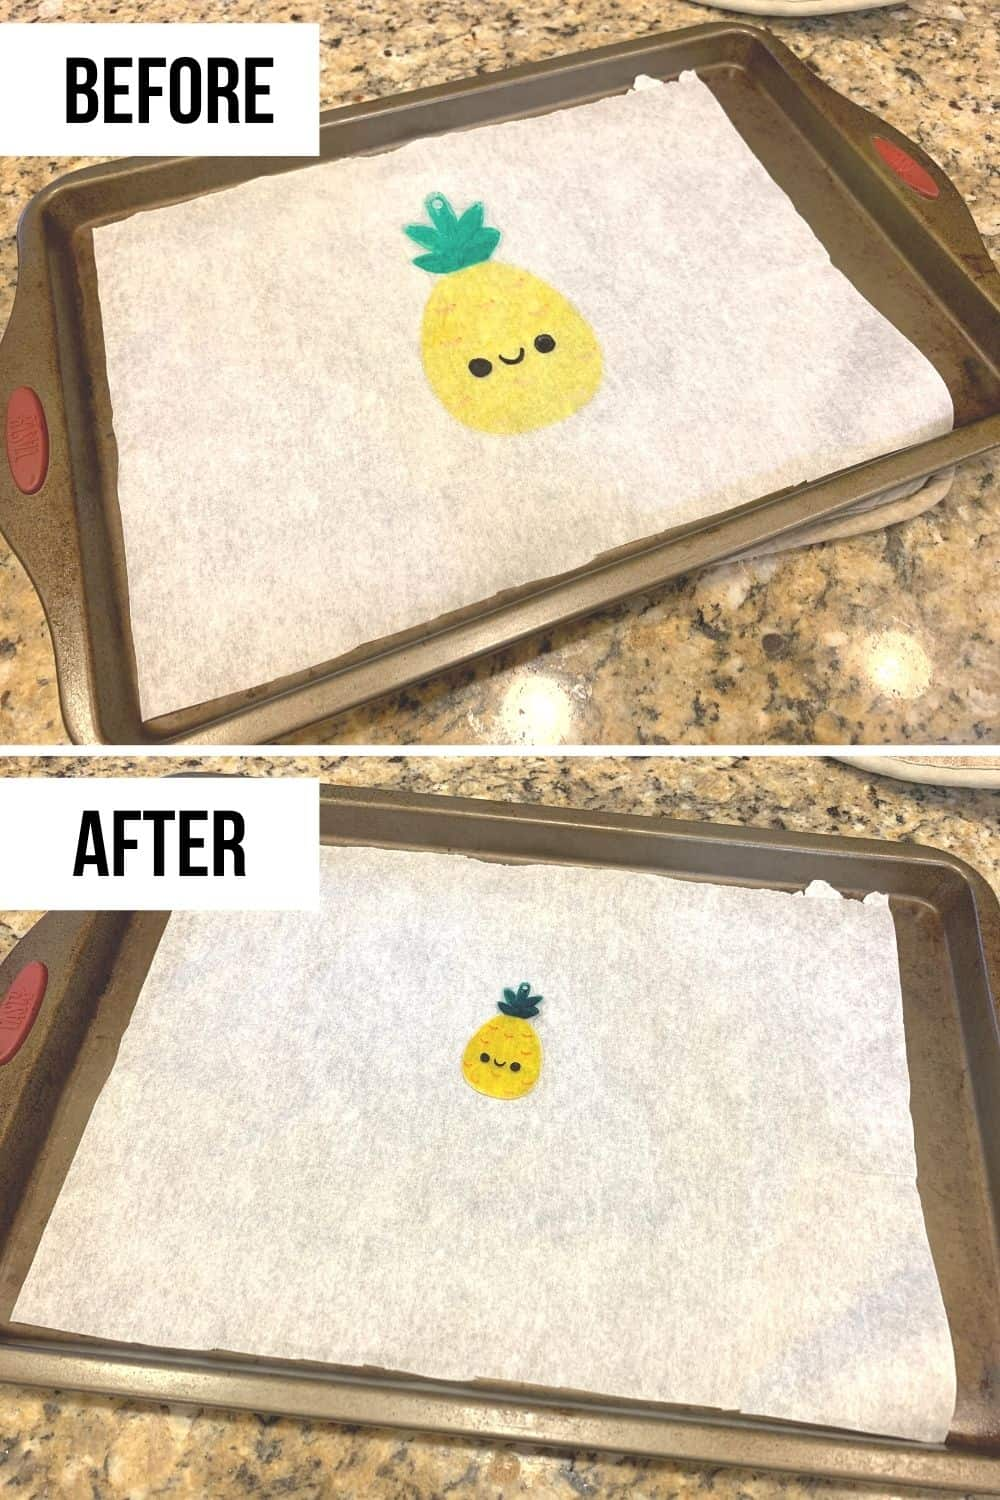 DIY Shrinky Dinks before and after applying heat